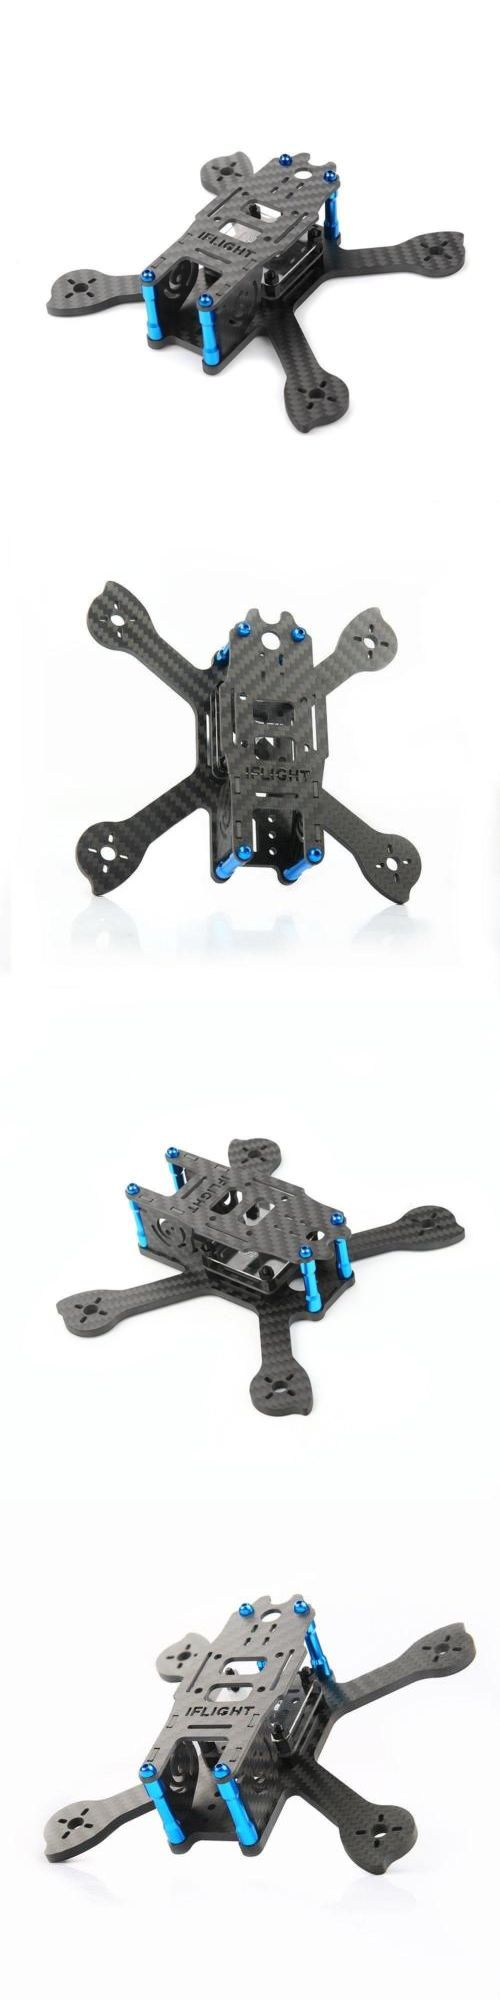 Radio Control 51029: Iflight Racer Ix3 V2 140Mm Rc Fpv Racing Quadcopter Frame 4Mm Carbon Fiber... -> BUY IT NOW ONLY: $34.92 on eBay!